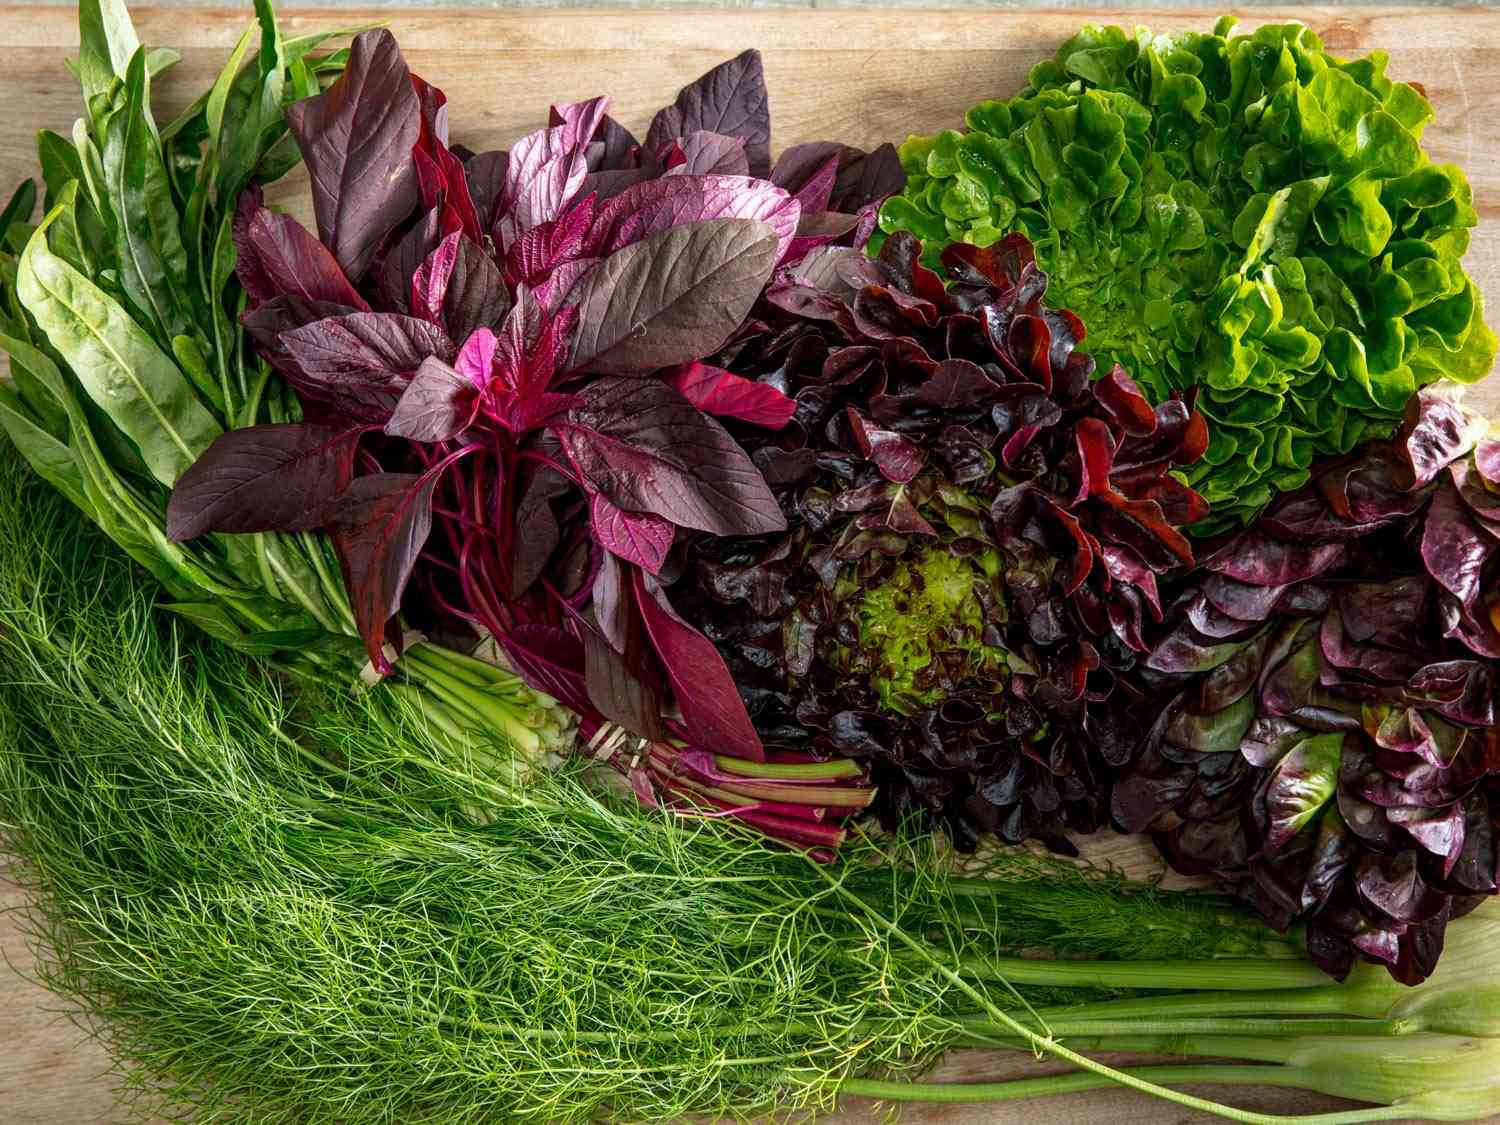 Selection of greens and lettuces on a cutting board, including fennel fronds, red and green leaf lettuce, and mustard greens.